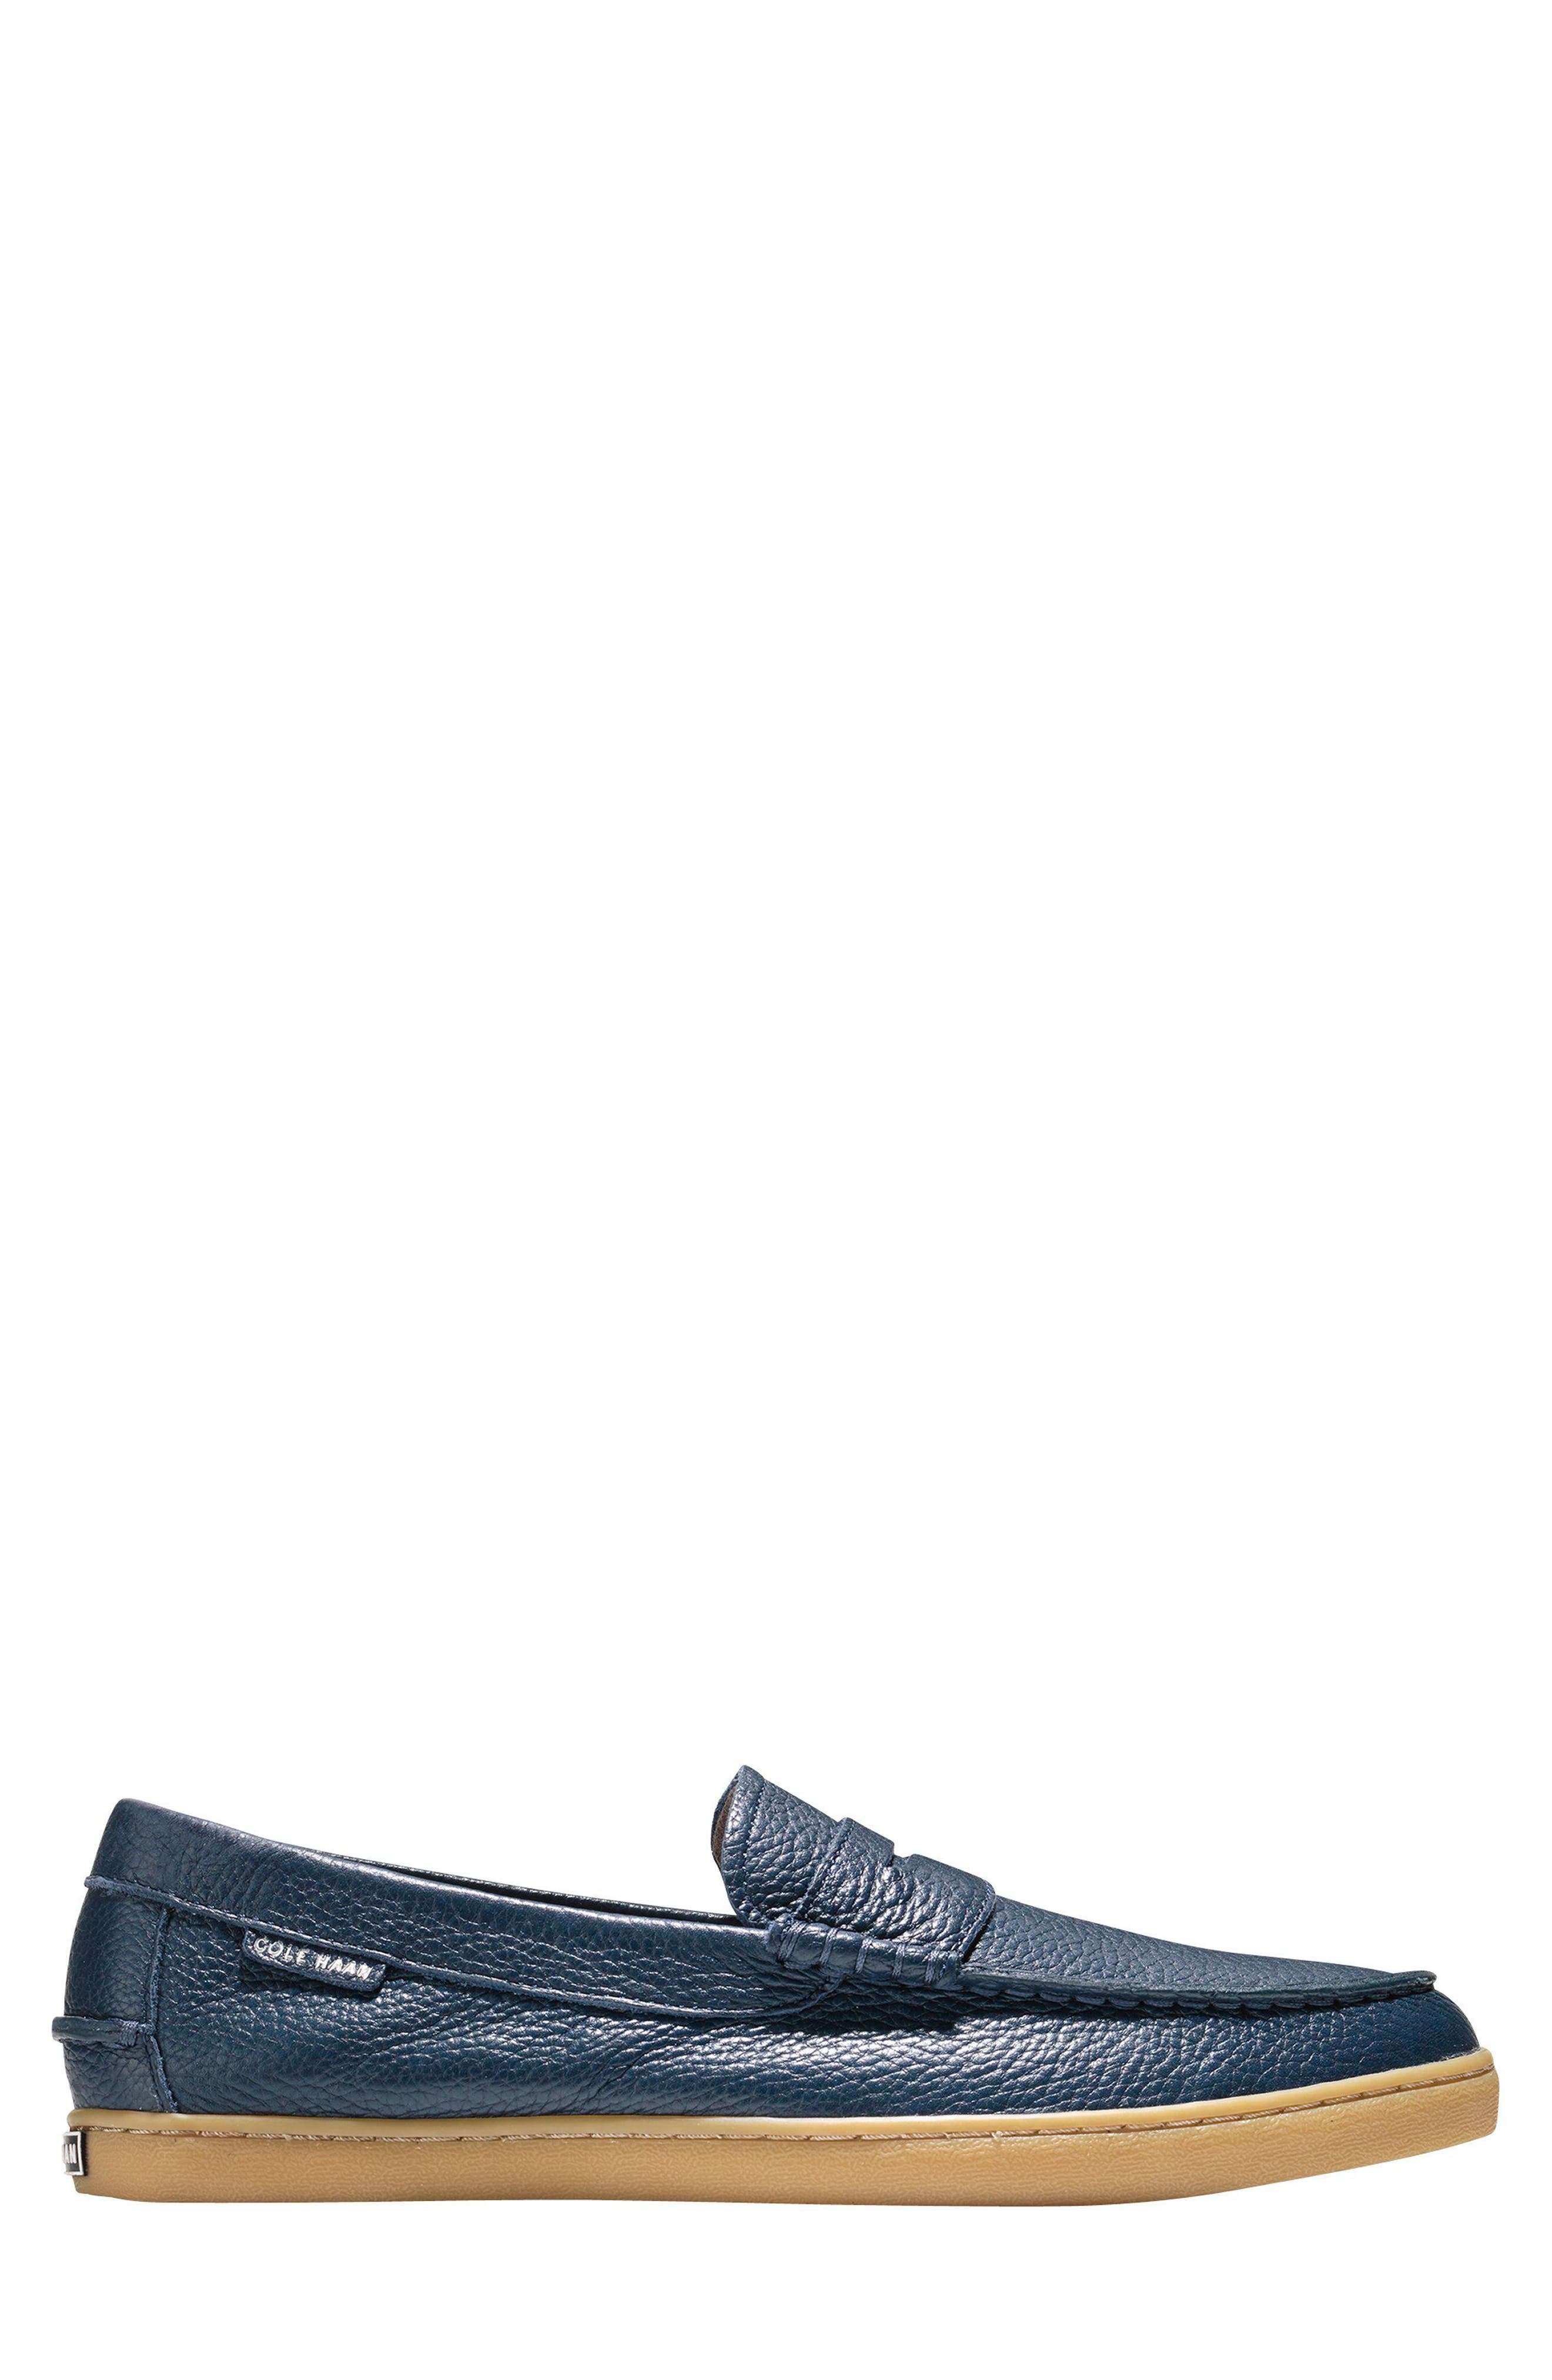 Alternate Image 3  - Cole Haan 'Pinch Weekend' Penny Loafer (Men)